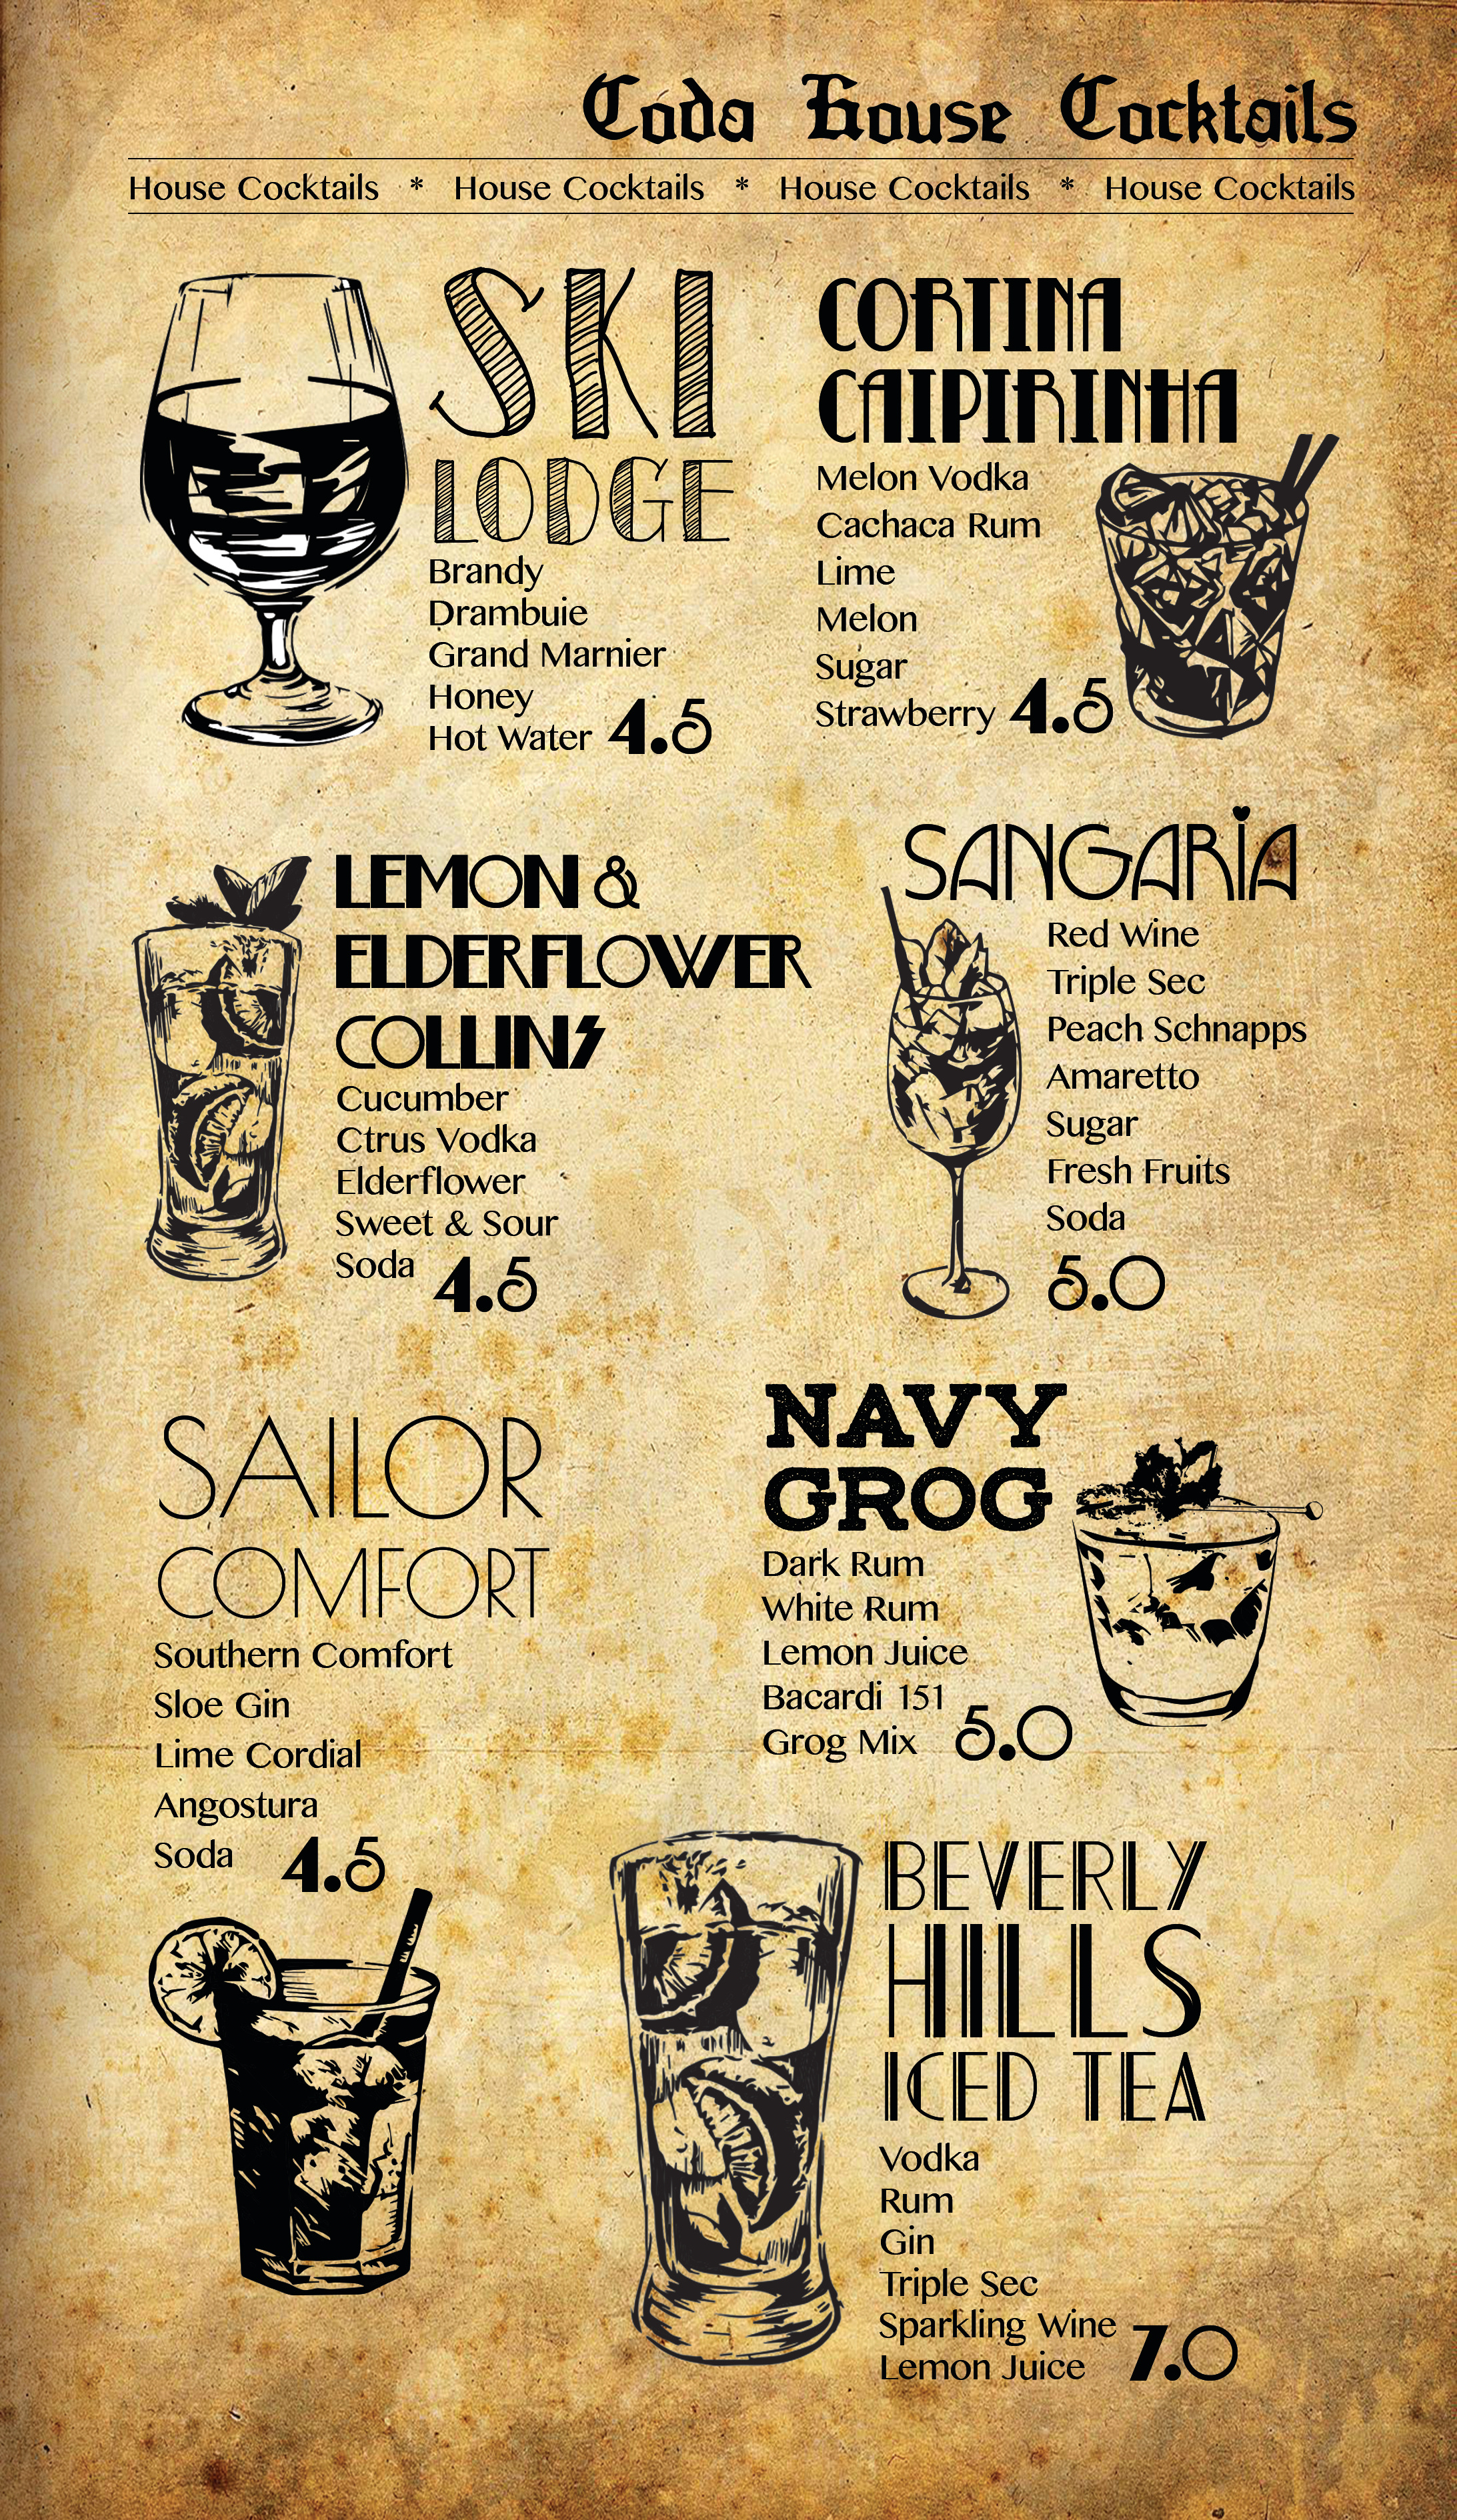 House Cocktails